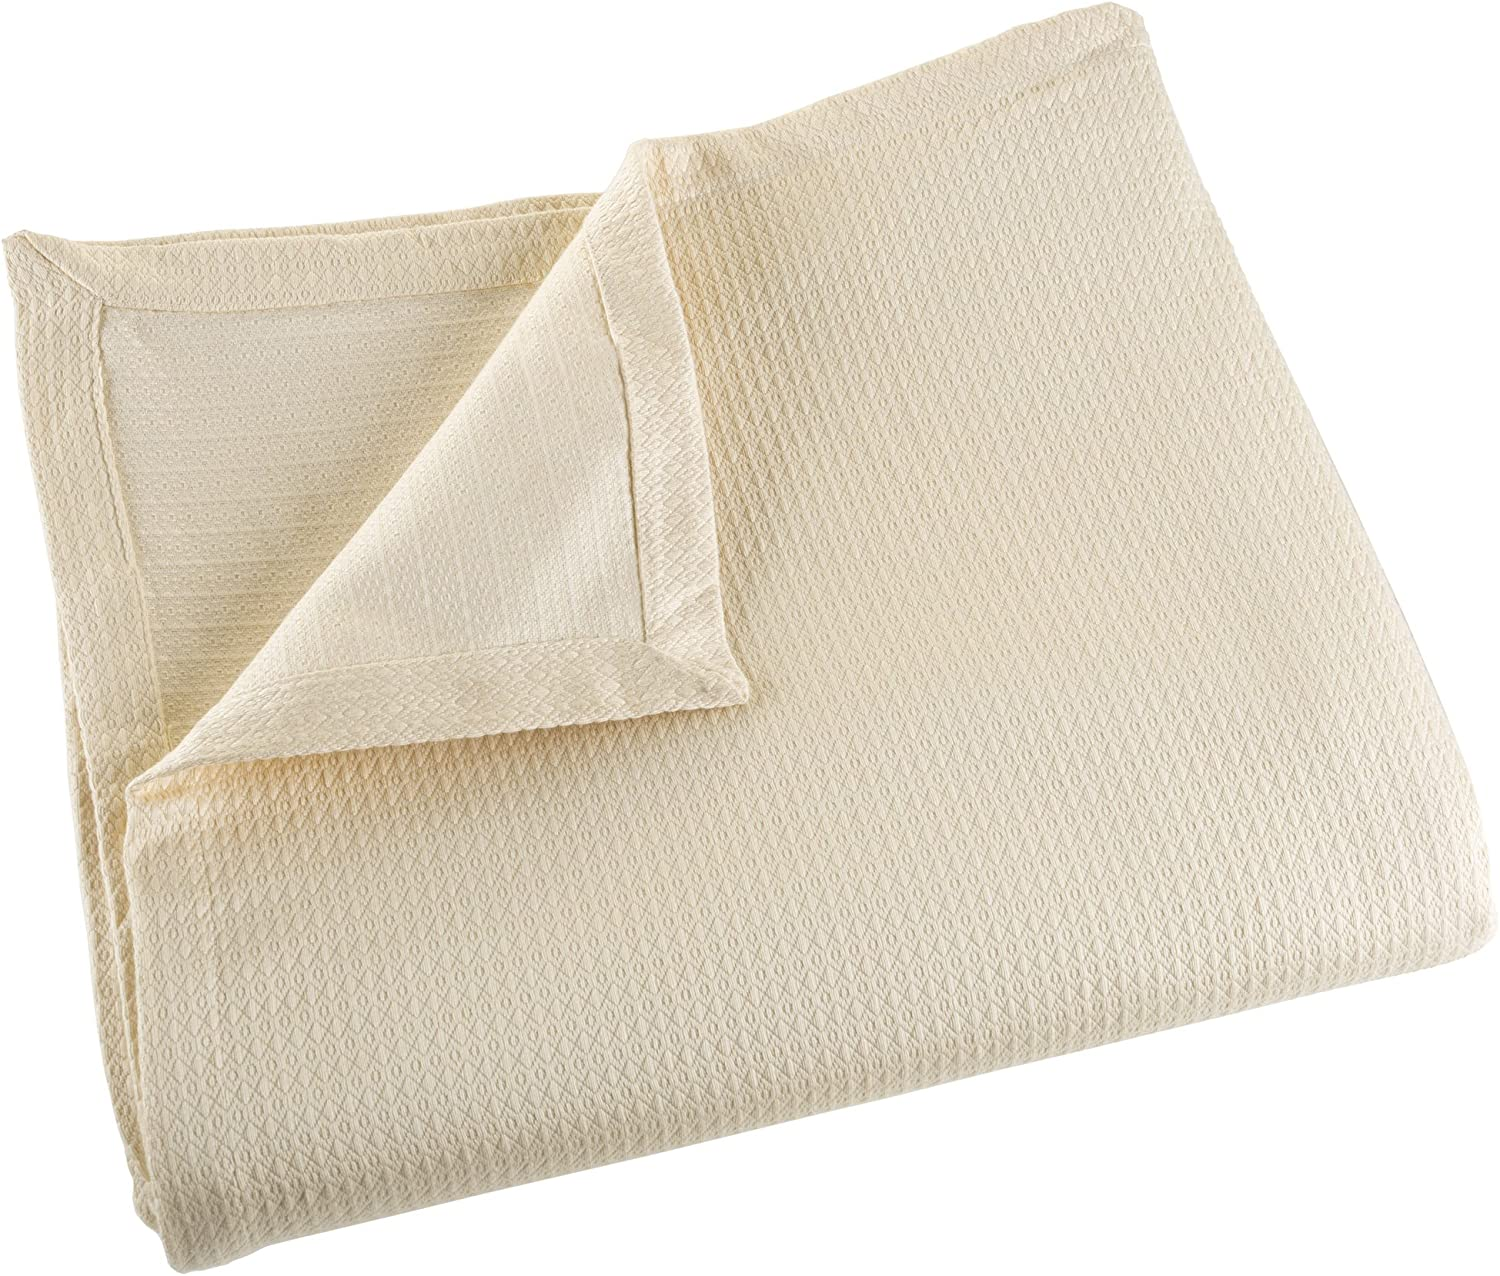 Cotton Blanket, Soft Breathable 100 Percent Cotton King Blanket for Comfort and Warmth By Lavish Home (King Size) (Cream)